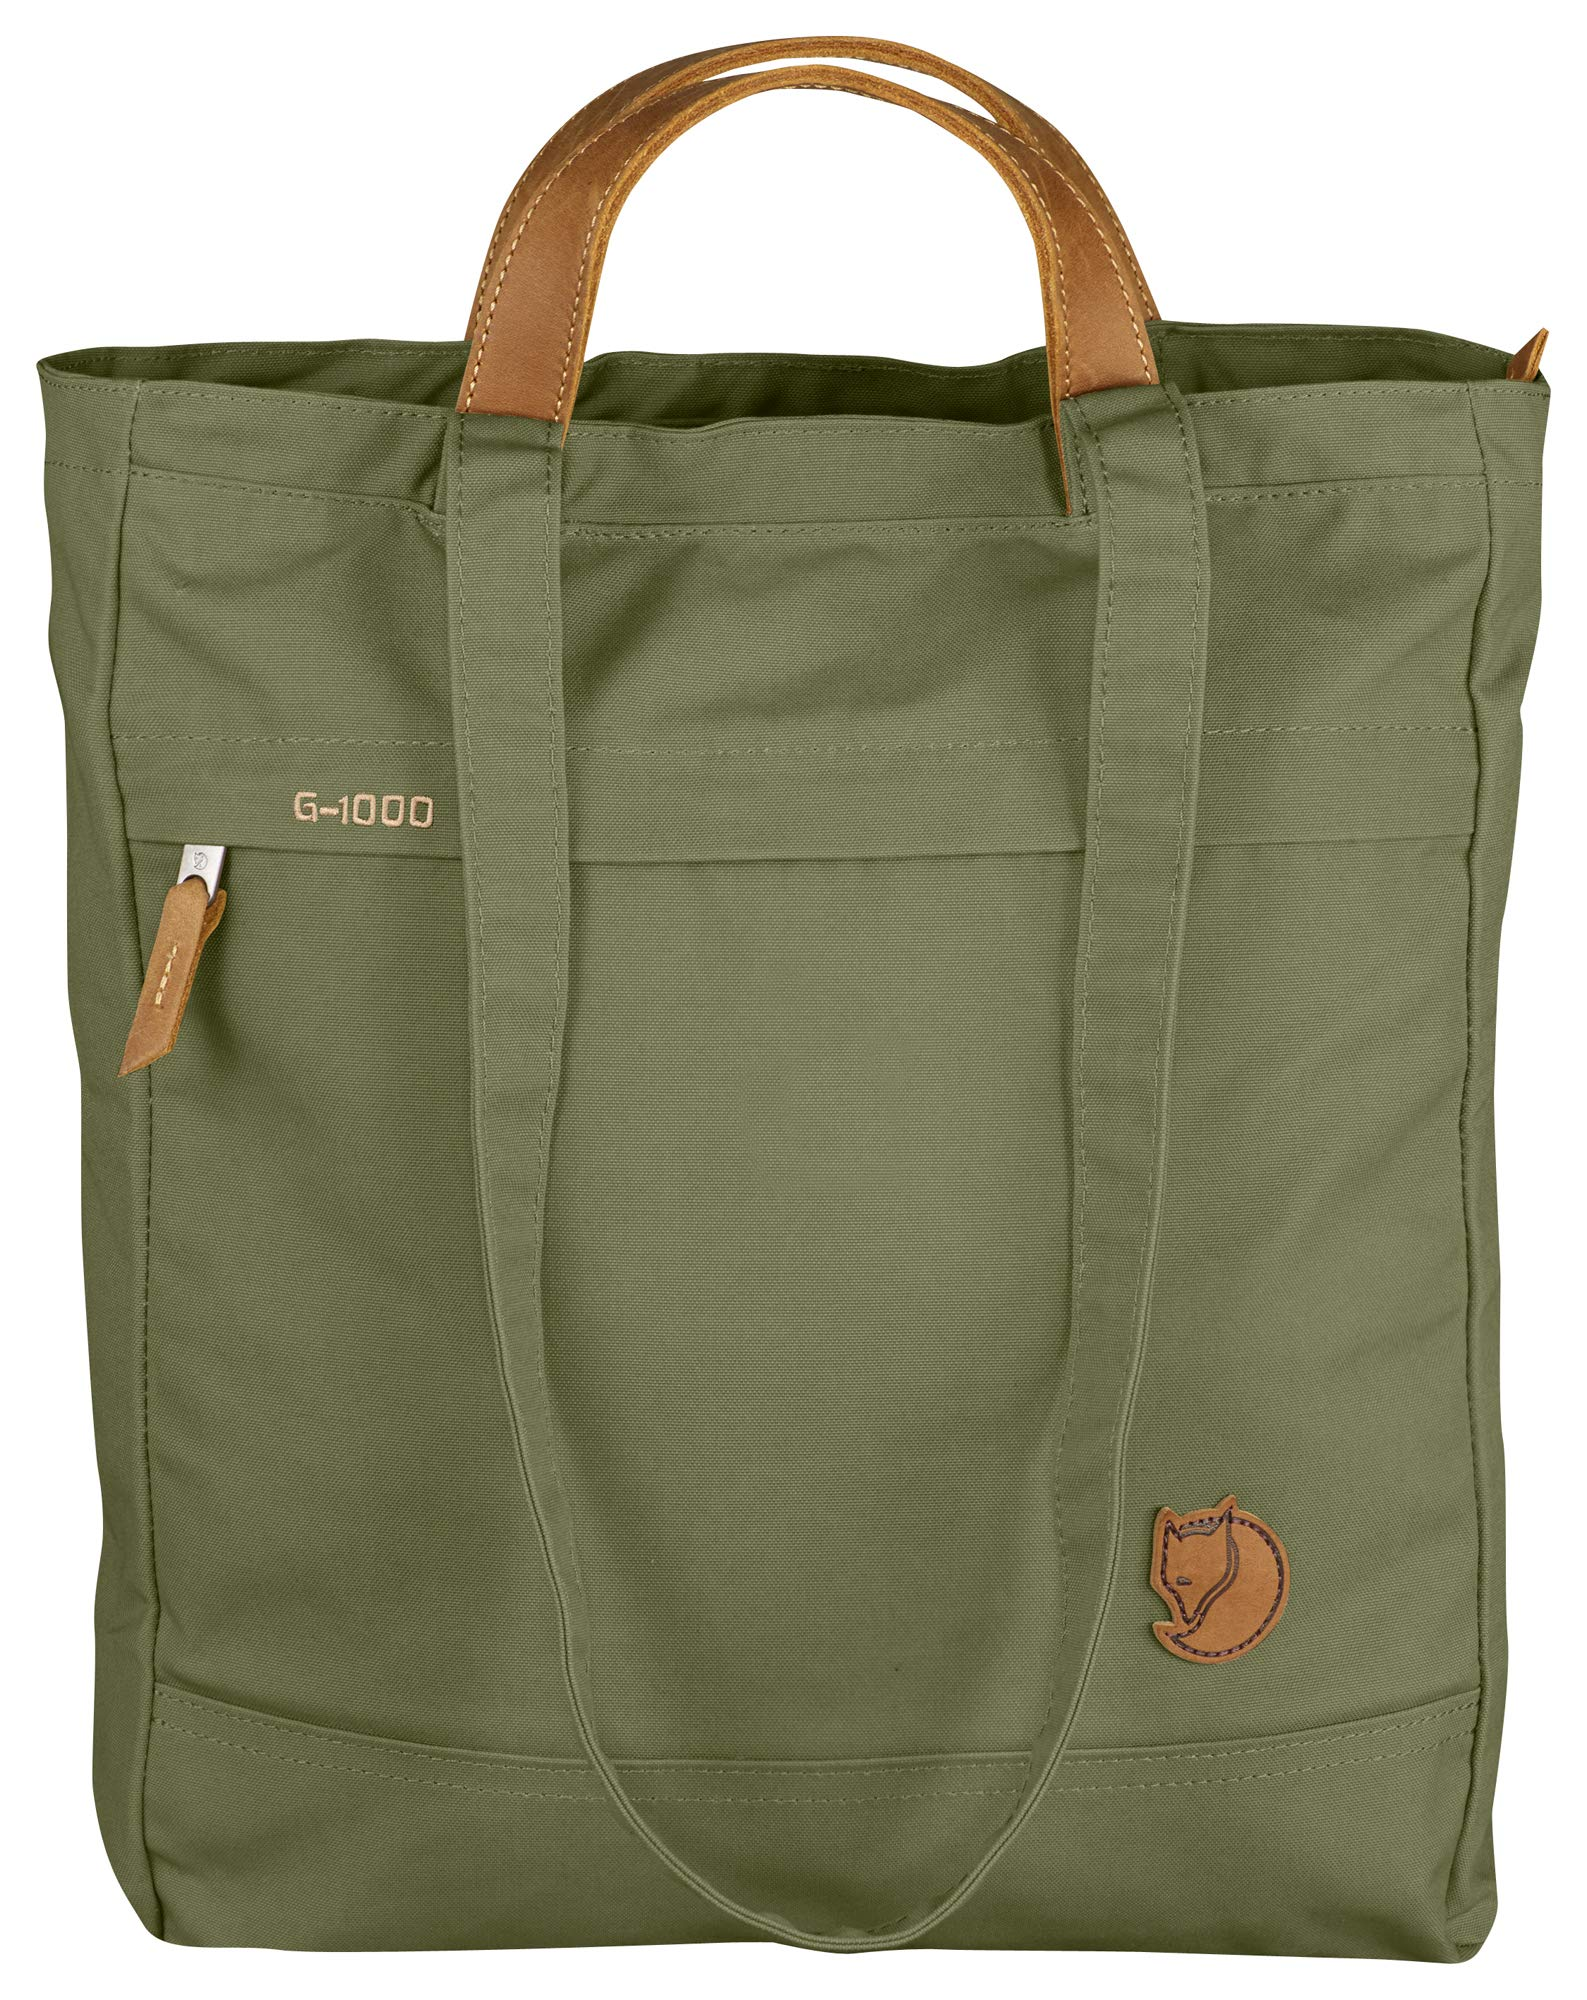 Fjallraven - Totepack No. 1 Backpack for Everyday Use, Green by Fjallraven